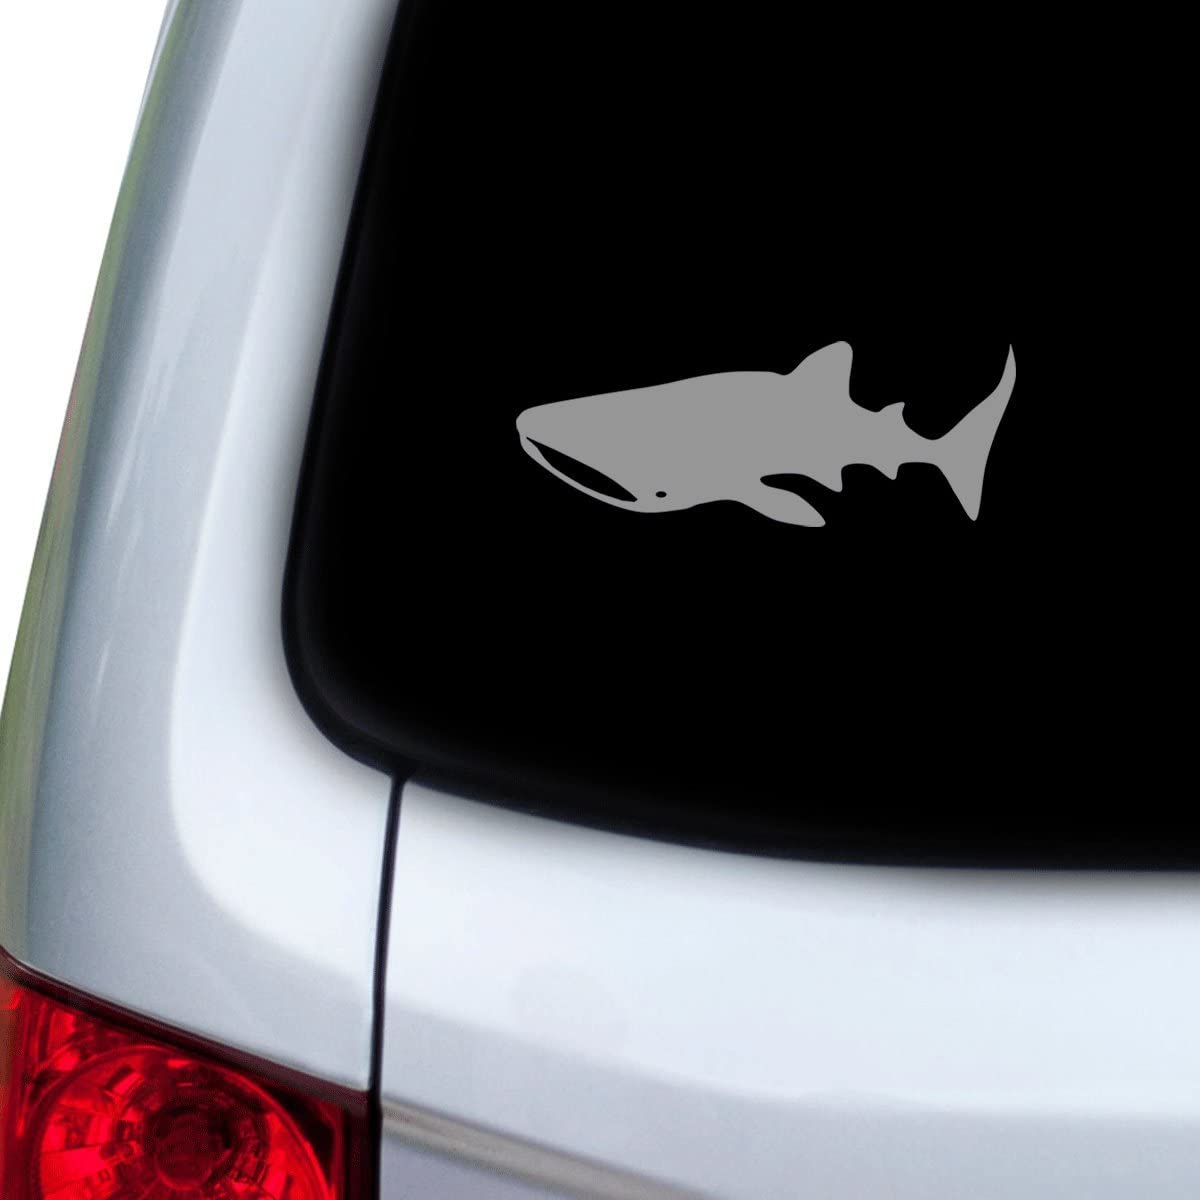 Red Hoods StickAny Car and Auto Decal Series Whale Shark Sticker for Windows Doors